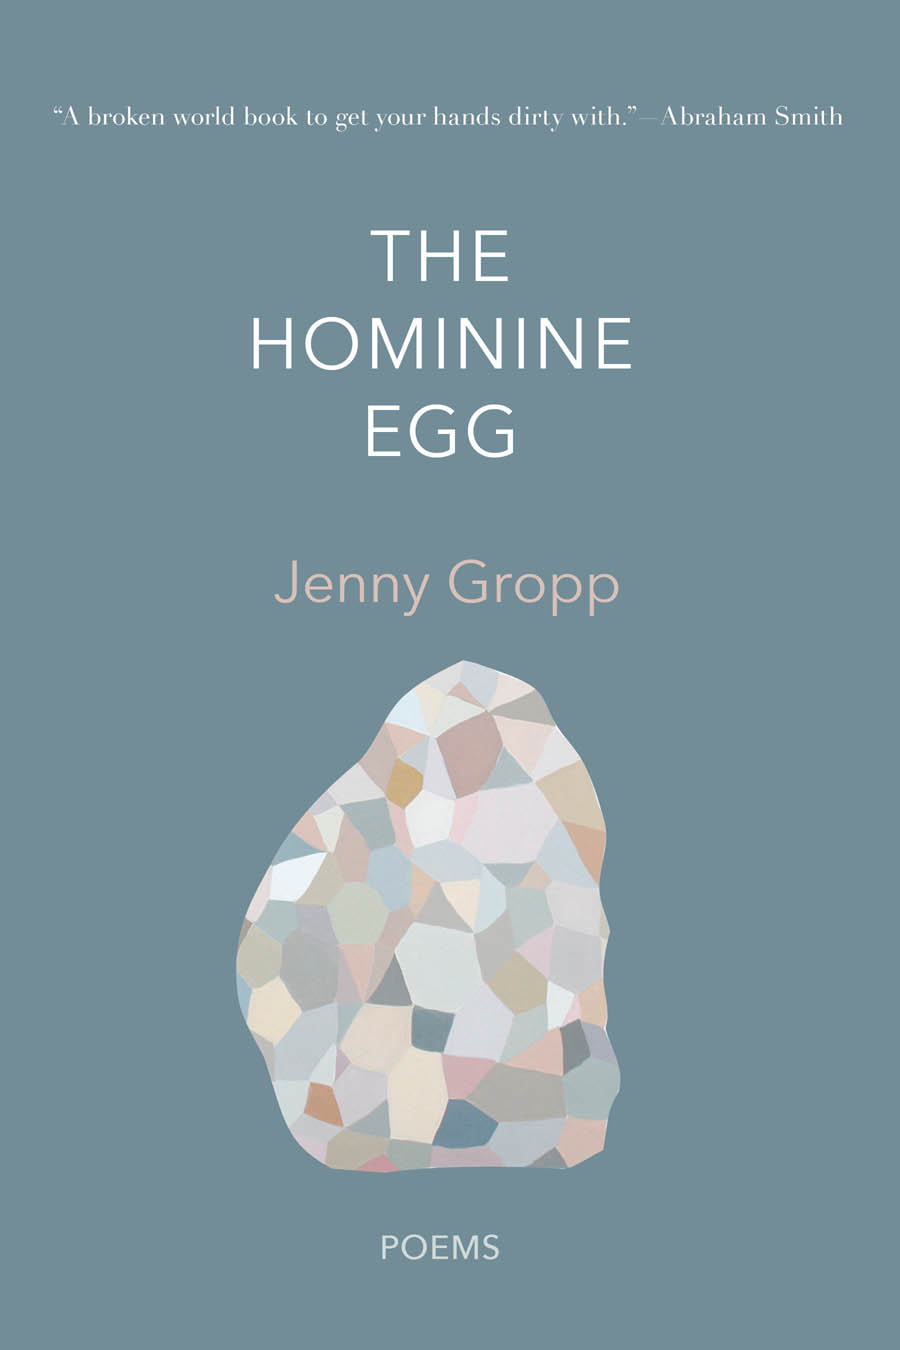 The Hominine Egg